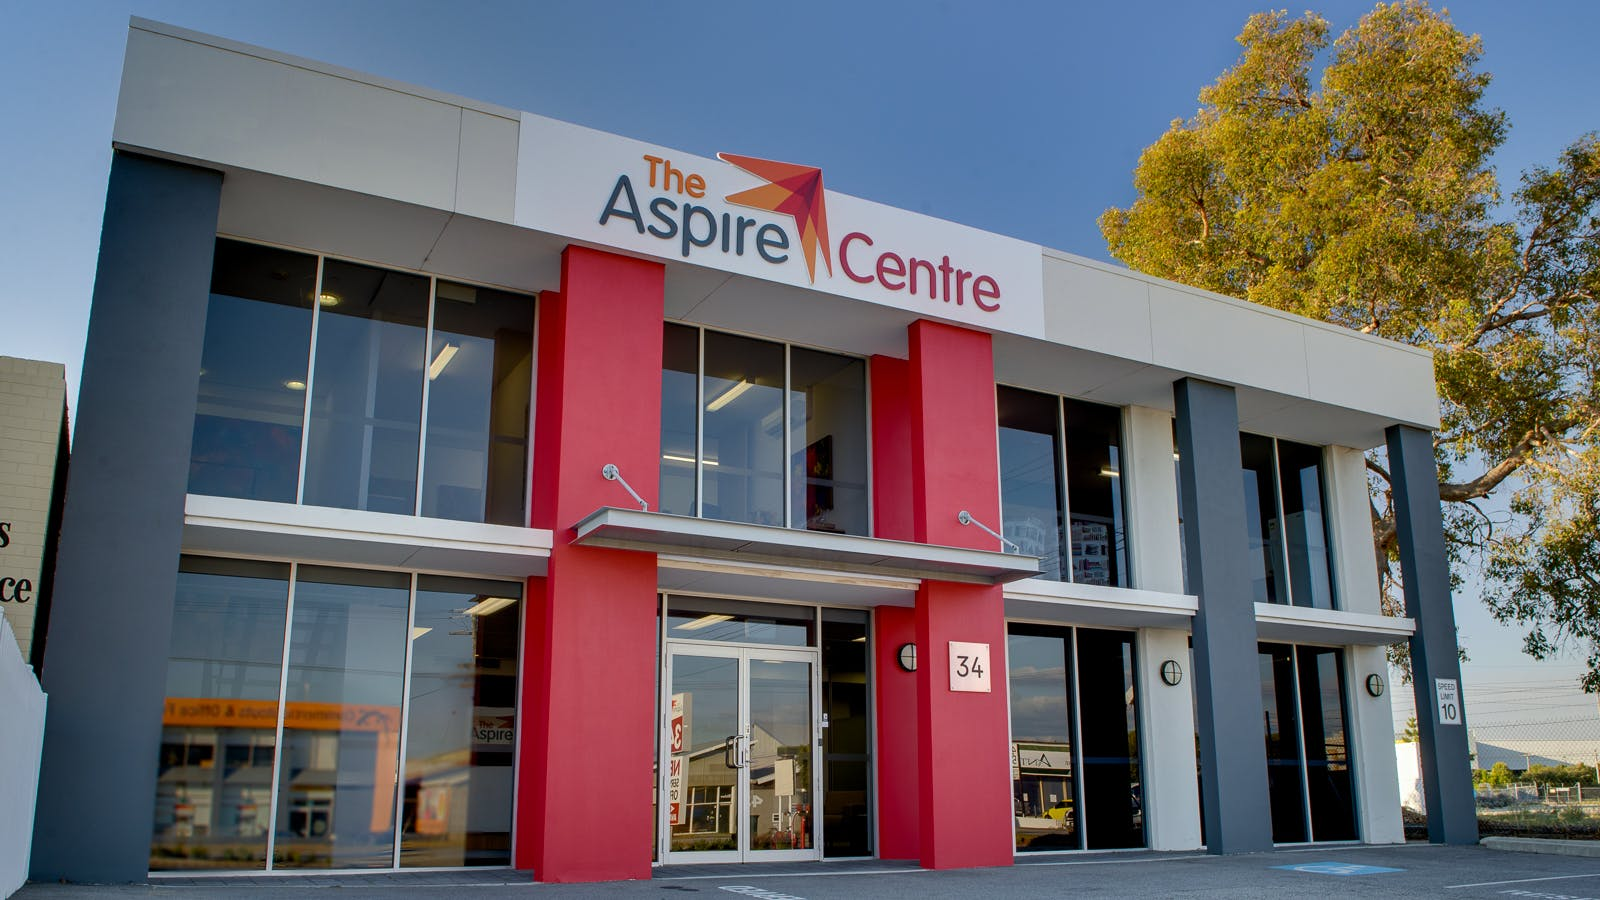 Office 10, serviced office at The Aspire Centre, image 4